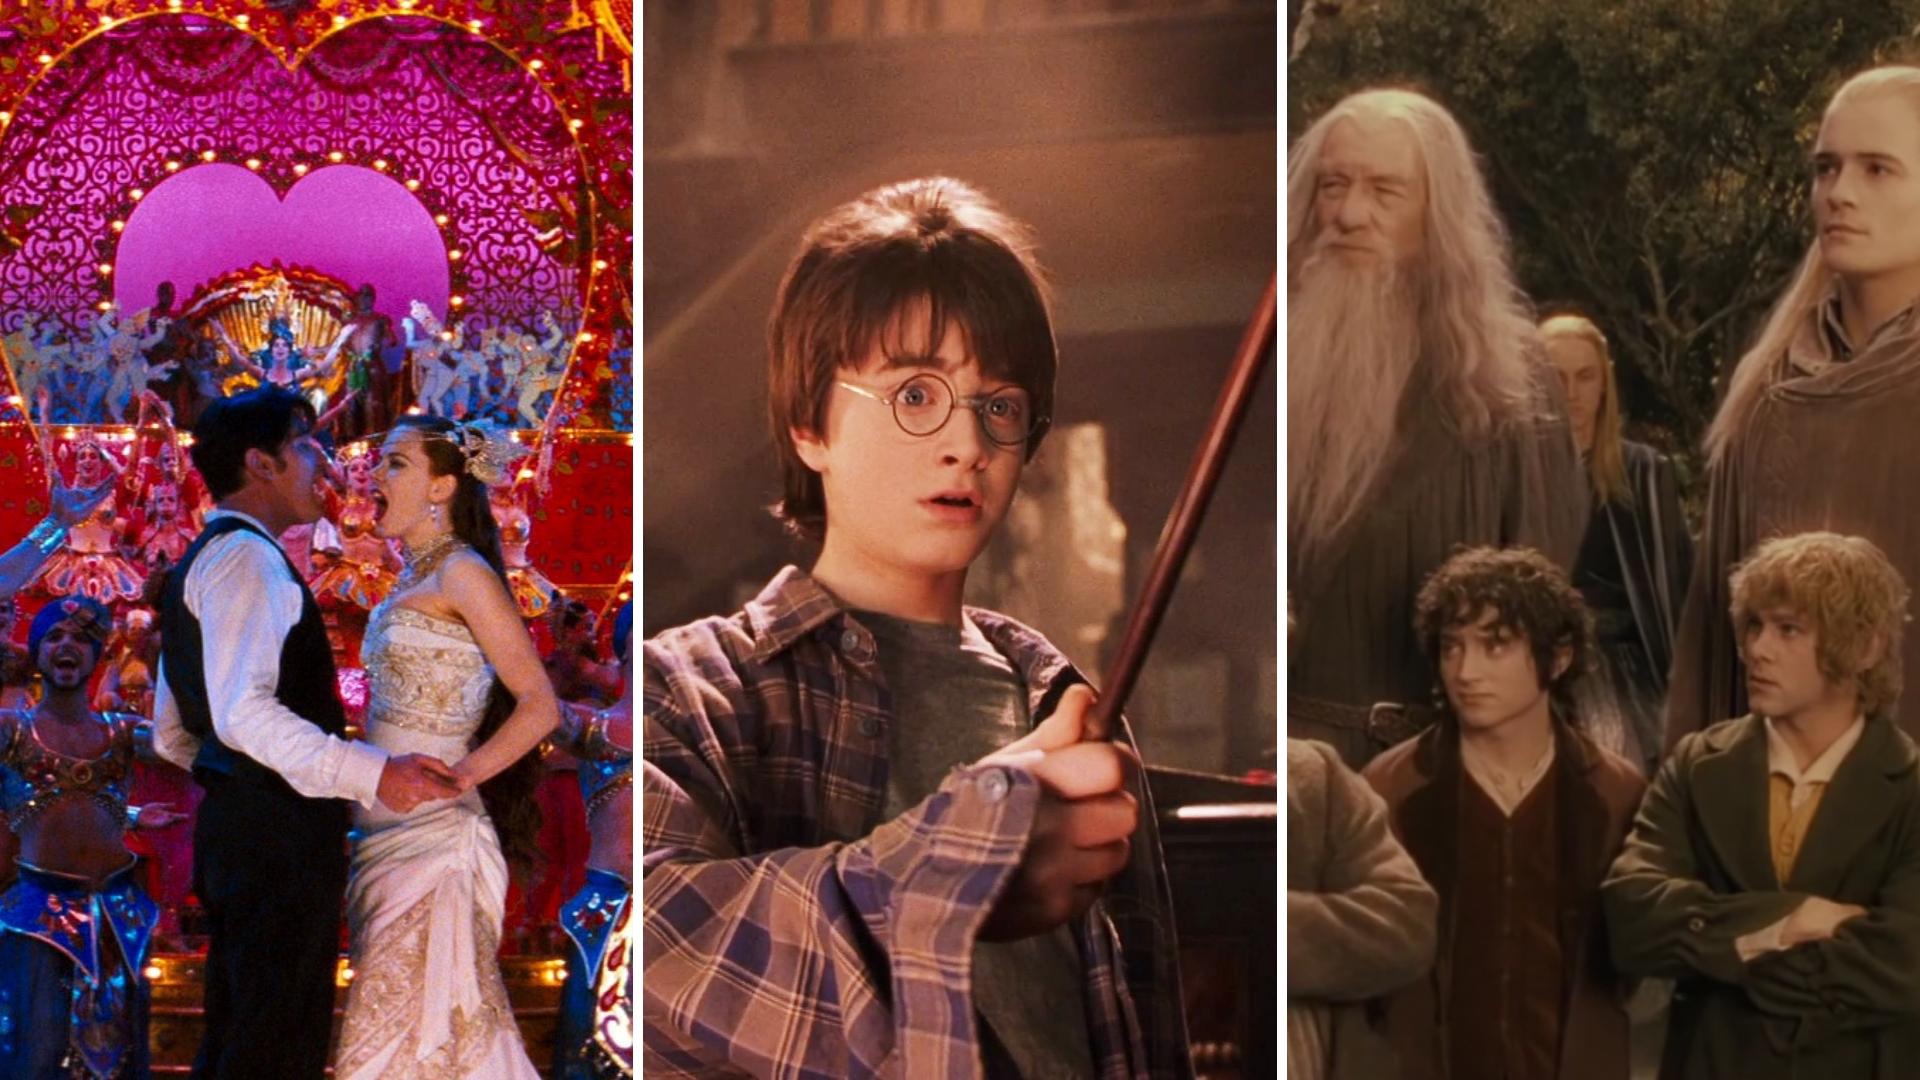 Potterish.com [Year 18] :: Harry Potter, The Ickabog, Fantastic Beasts, JK Rowling, Daniel, Emma & Rupert Harry Potter and the Oscar: were the films really wronged?